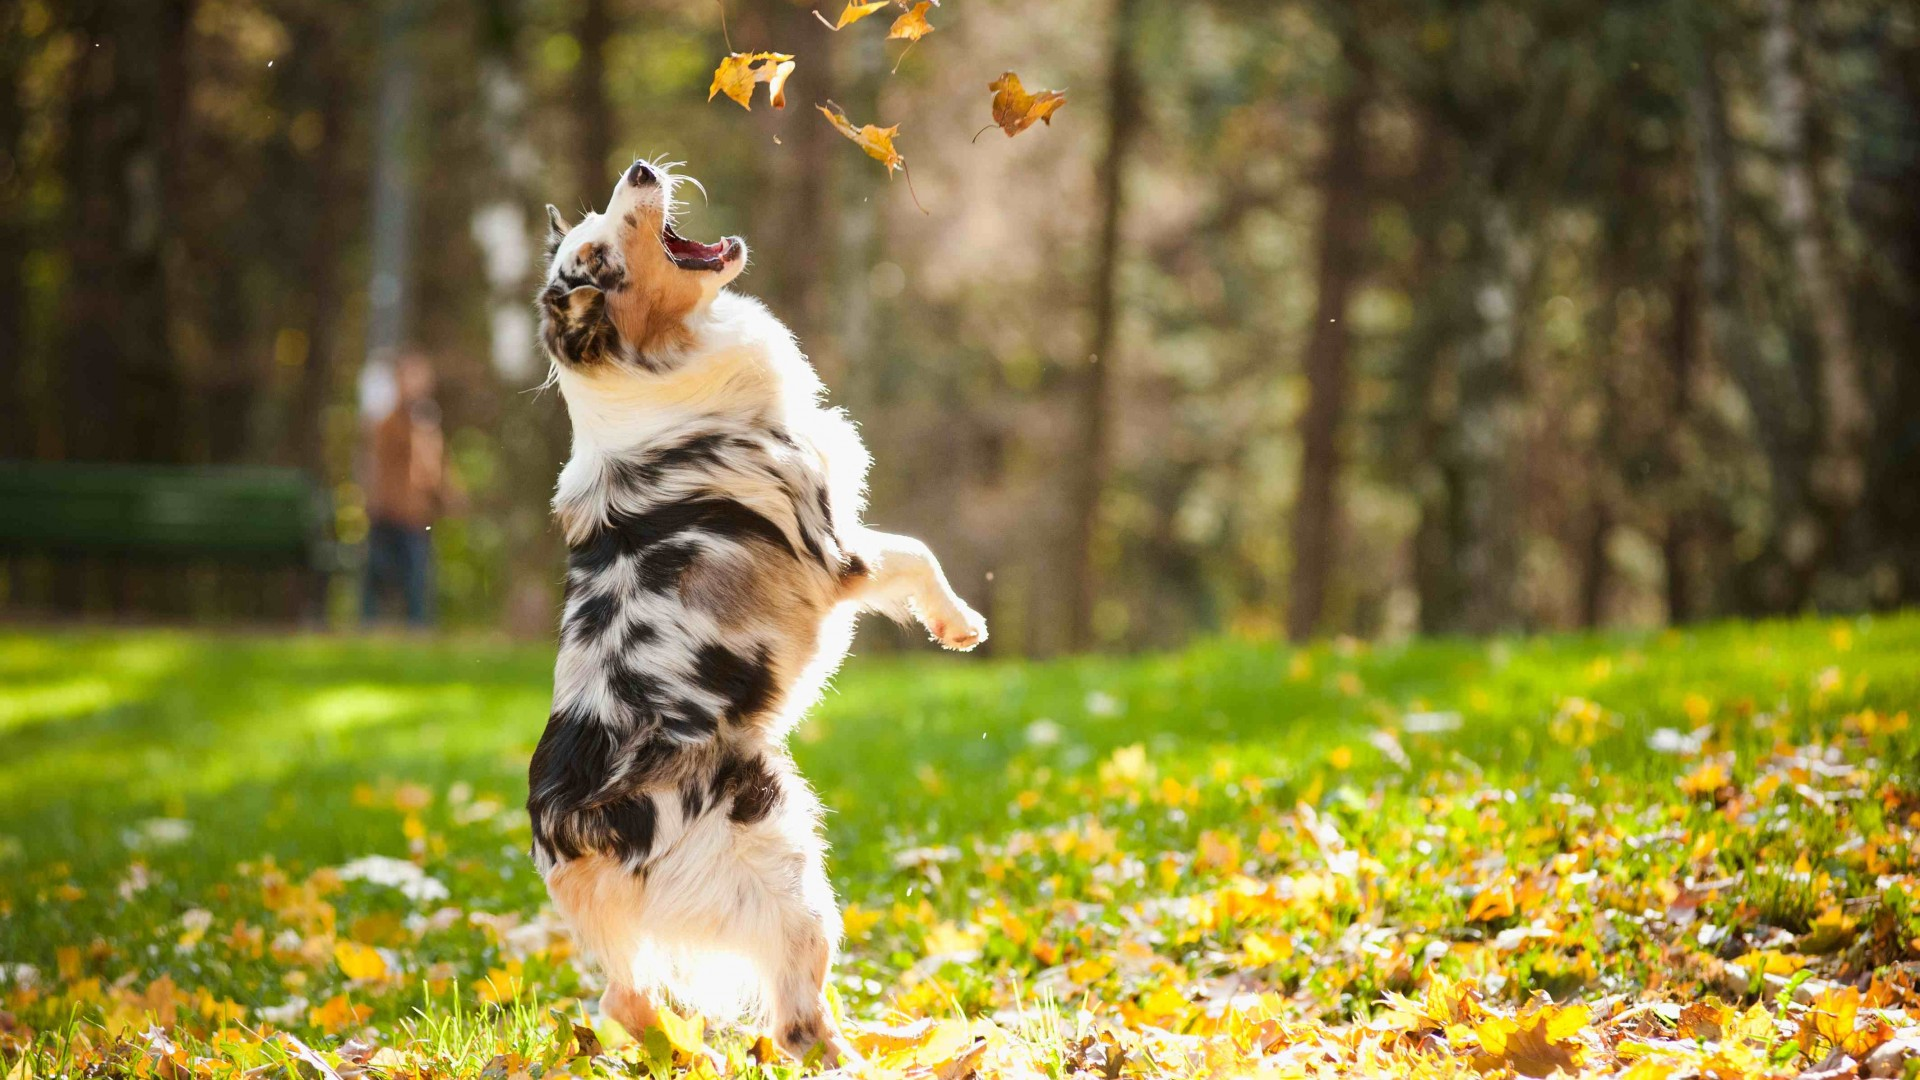 Dog, puppy, jumping, leaves, autumn, pet, green grass, park (horizontal)